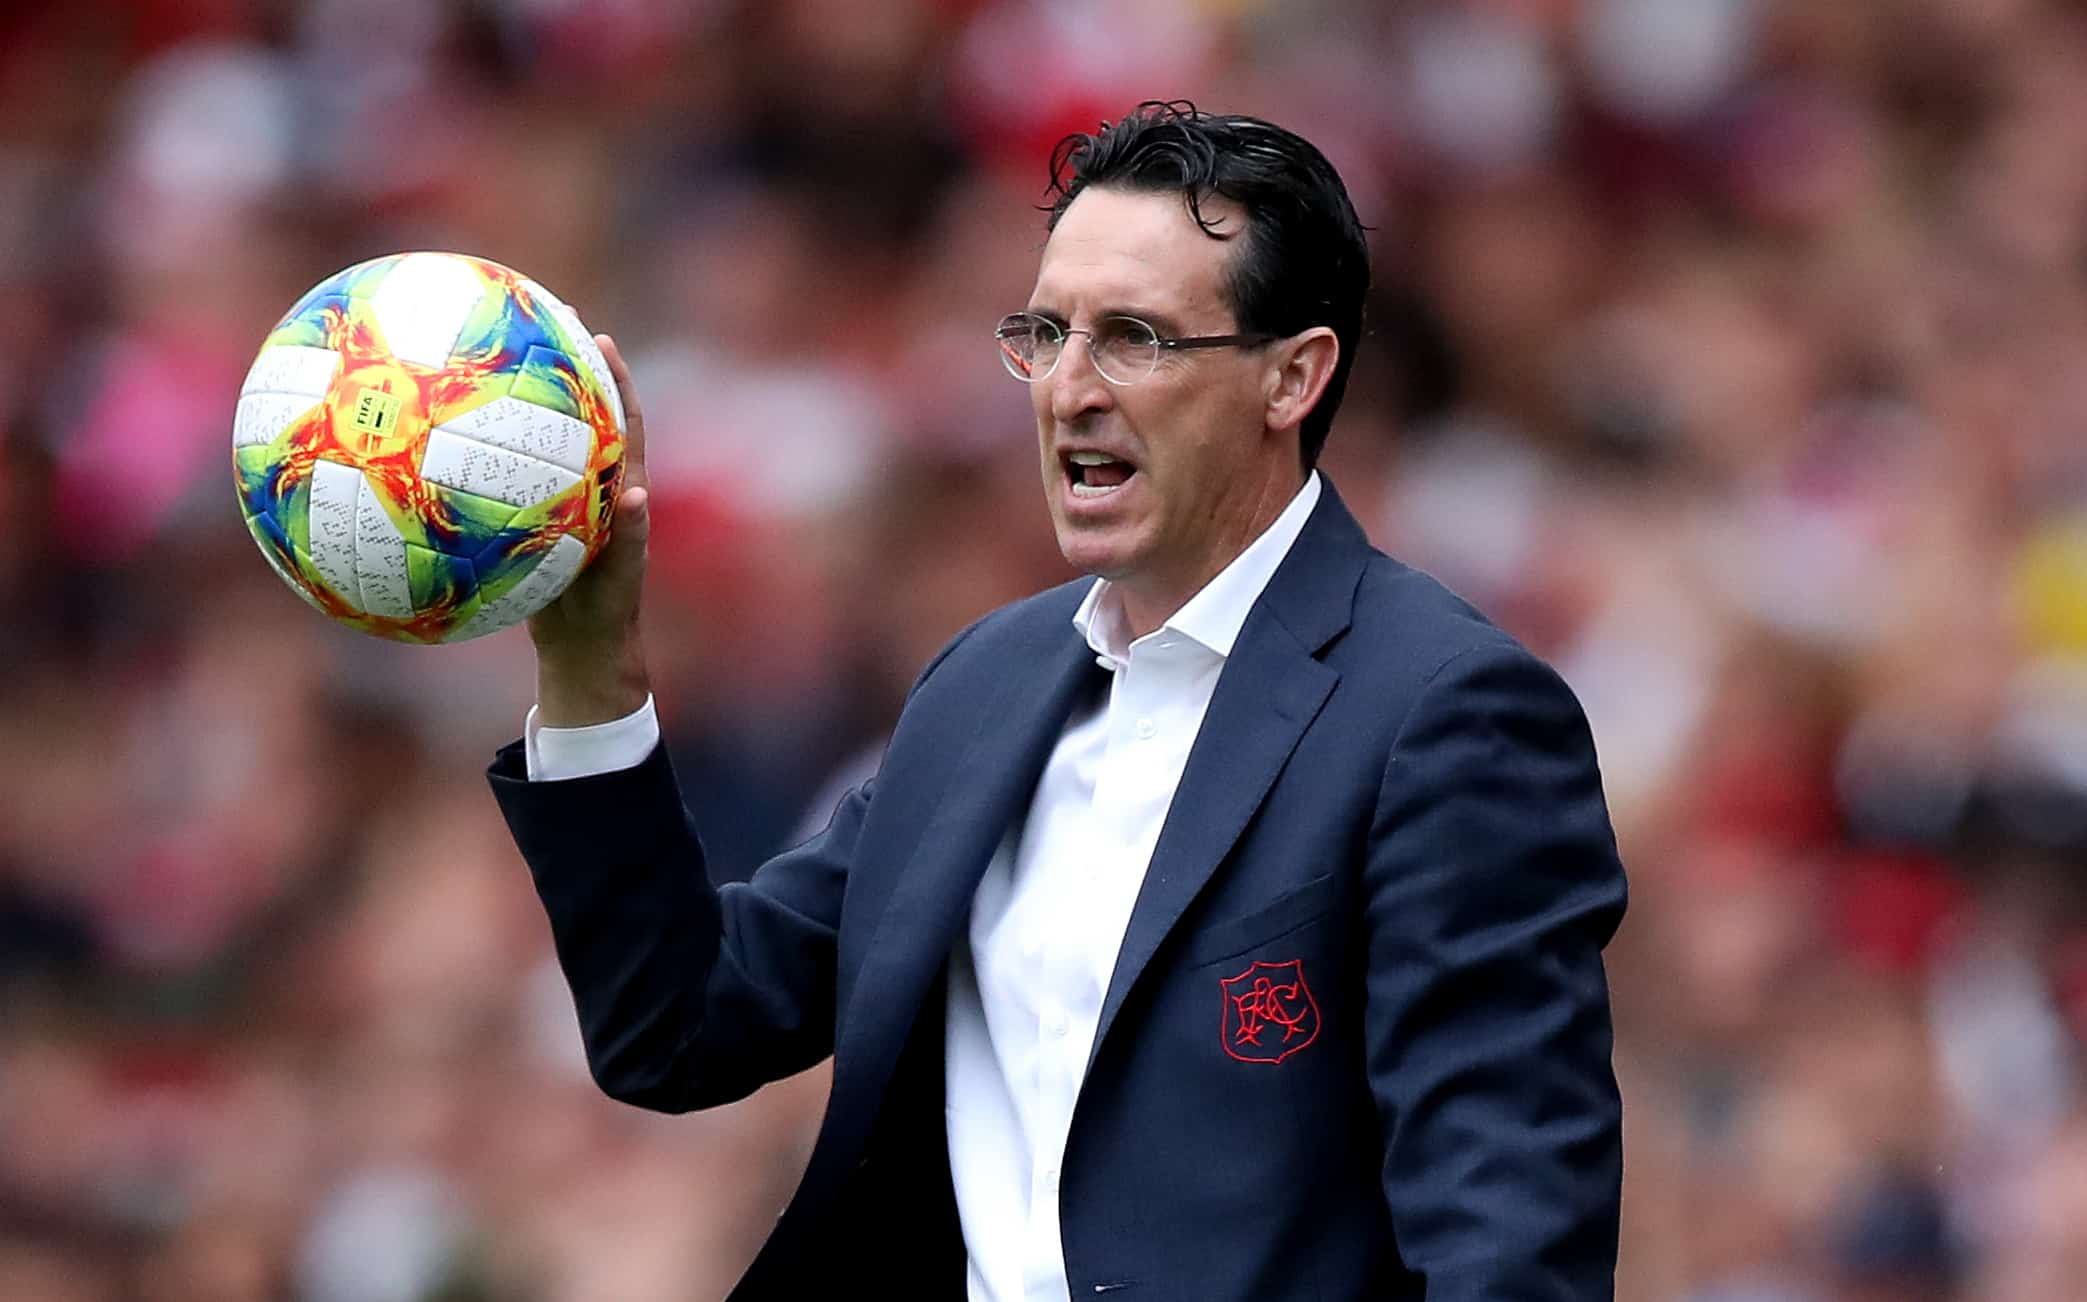 Unai Emery adamant Mesut Ozil's future remains with Arsenal